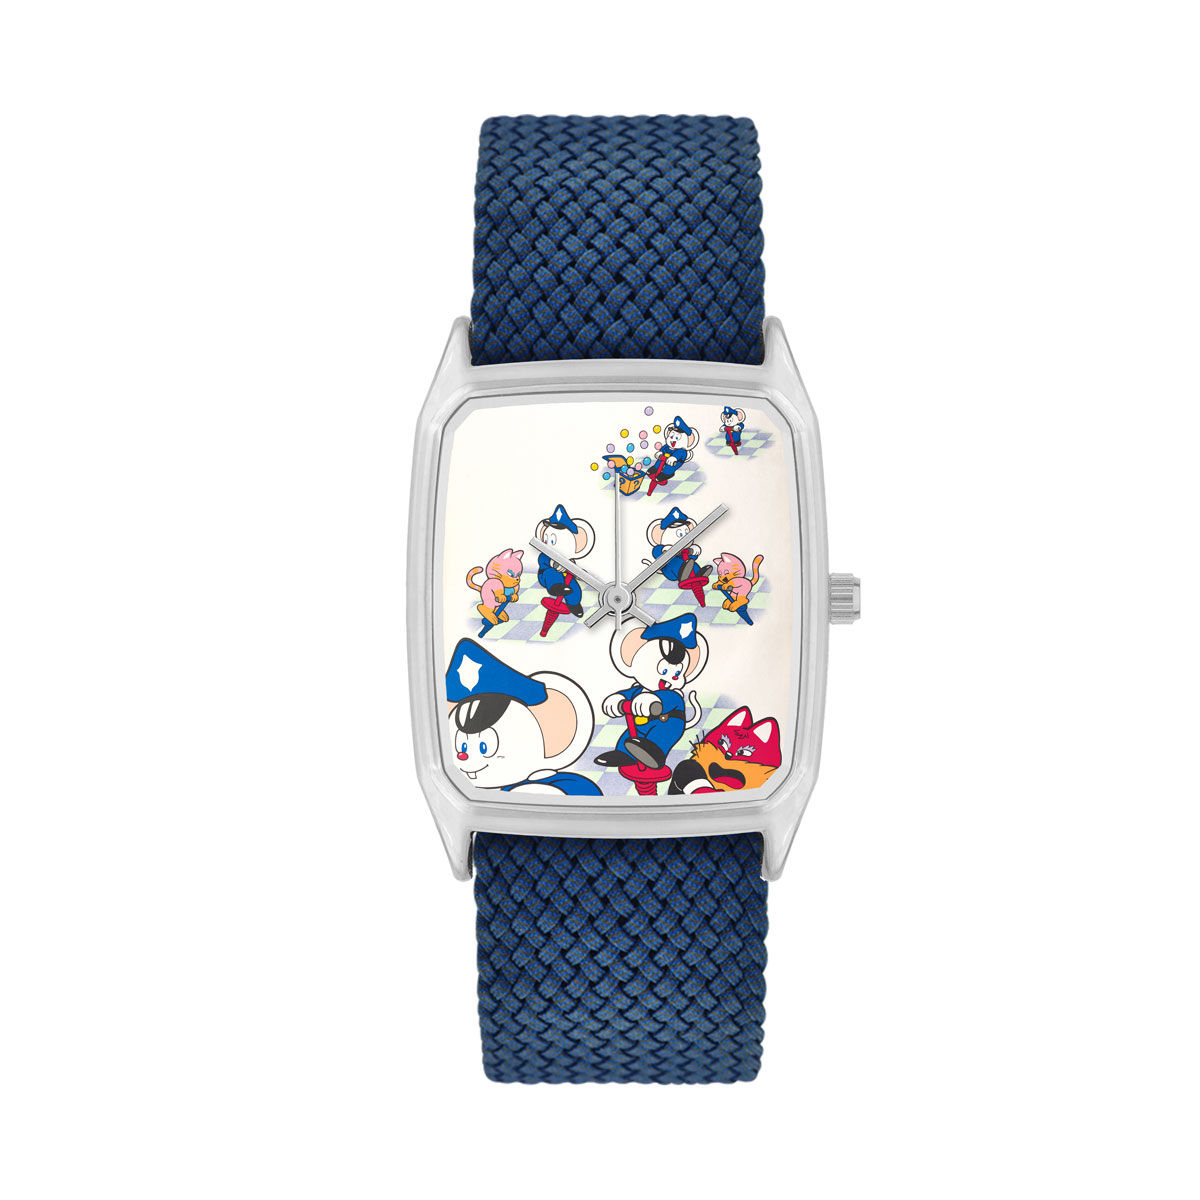 Hopping Mappy Wristwatch—Namco Museum/LAPS Collaboration